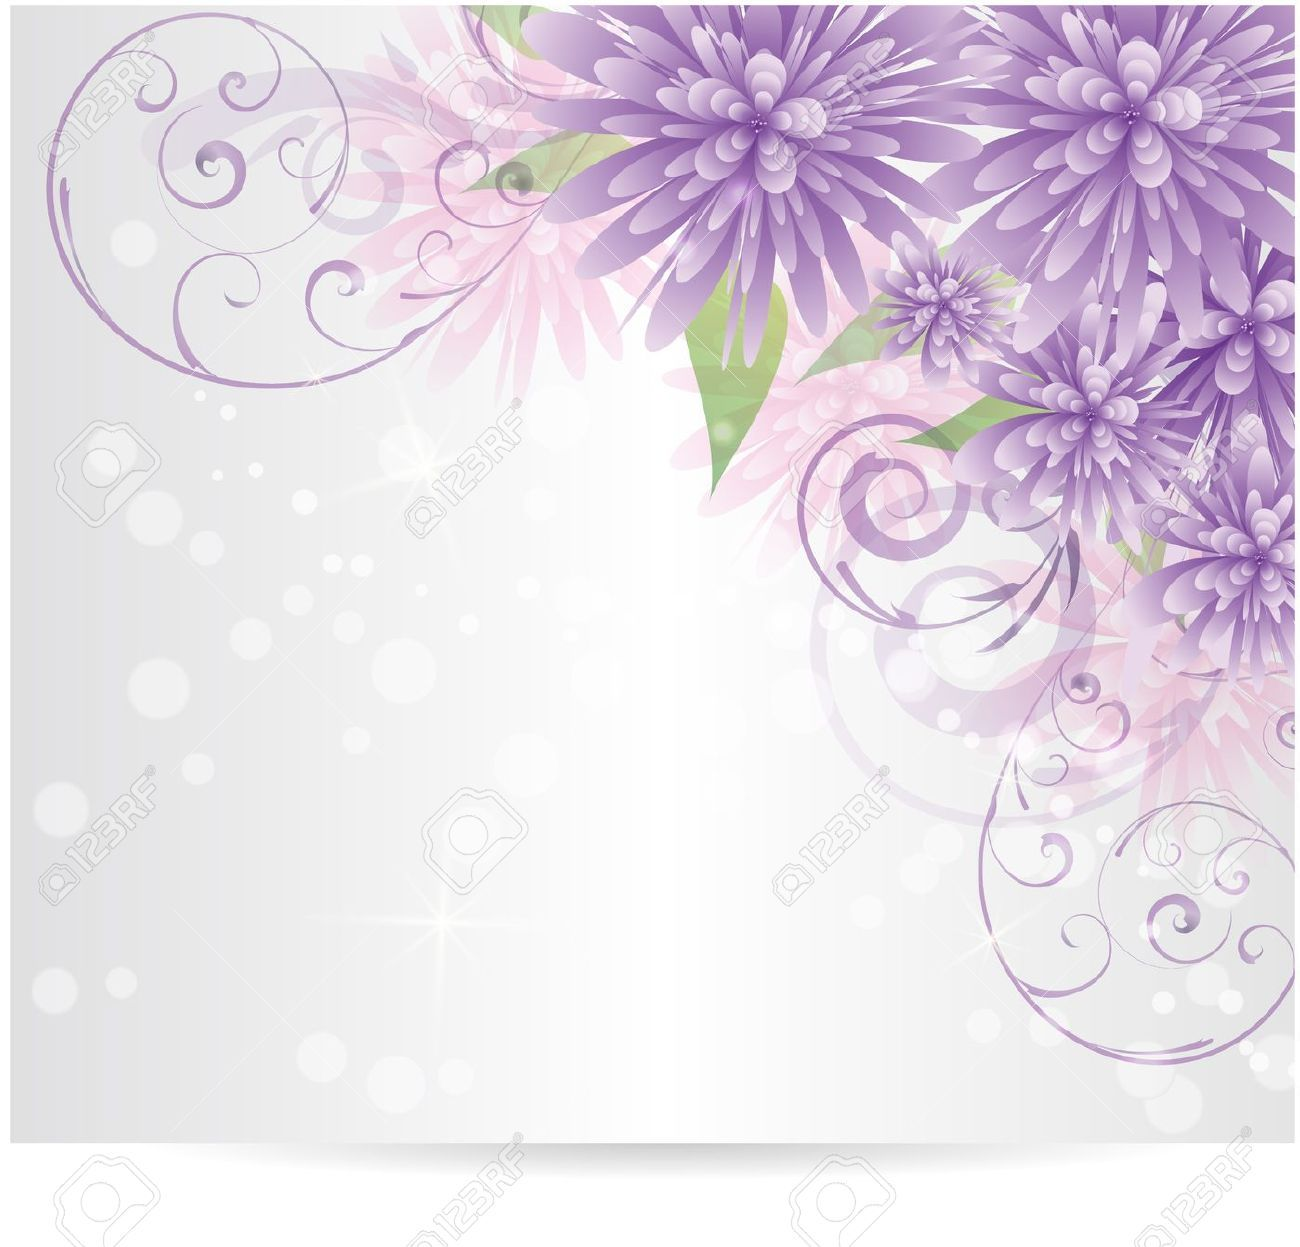 20841501-Background-with-purple-abstract-flowers-and-swirl